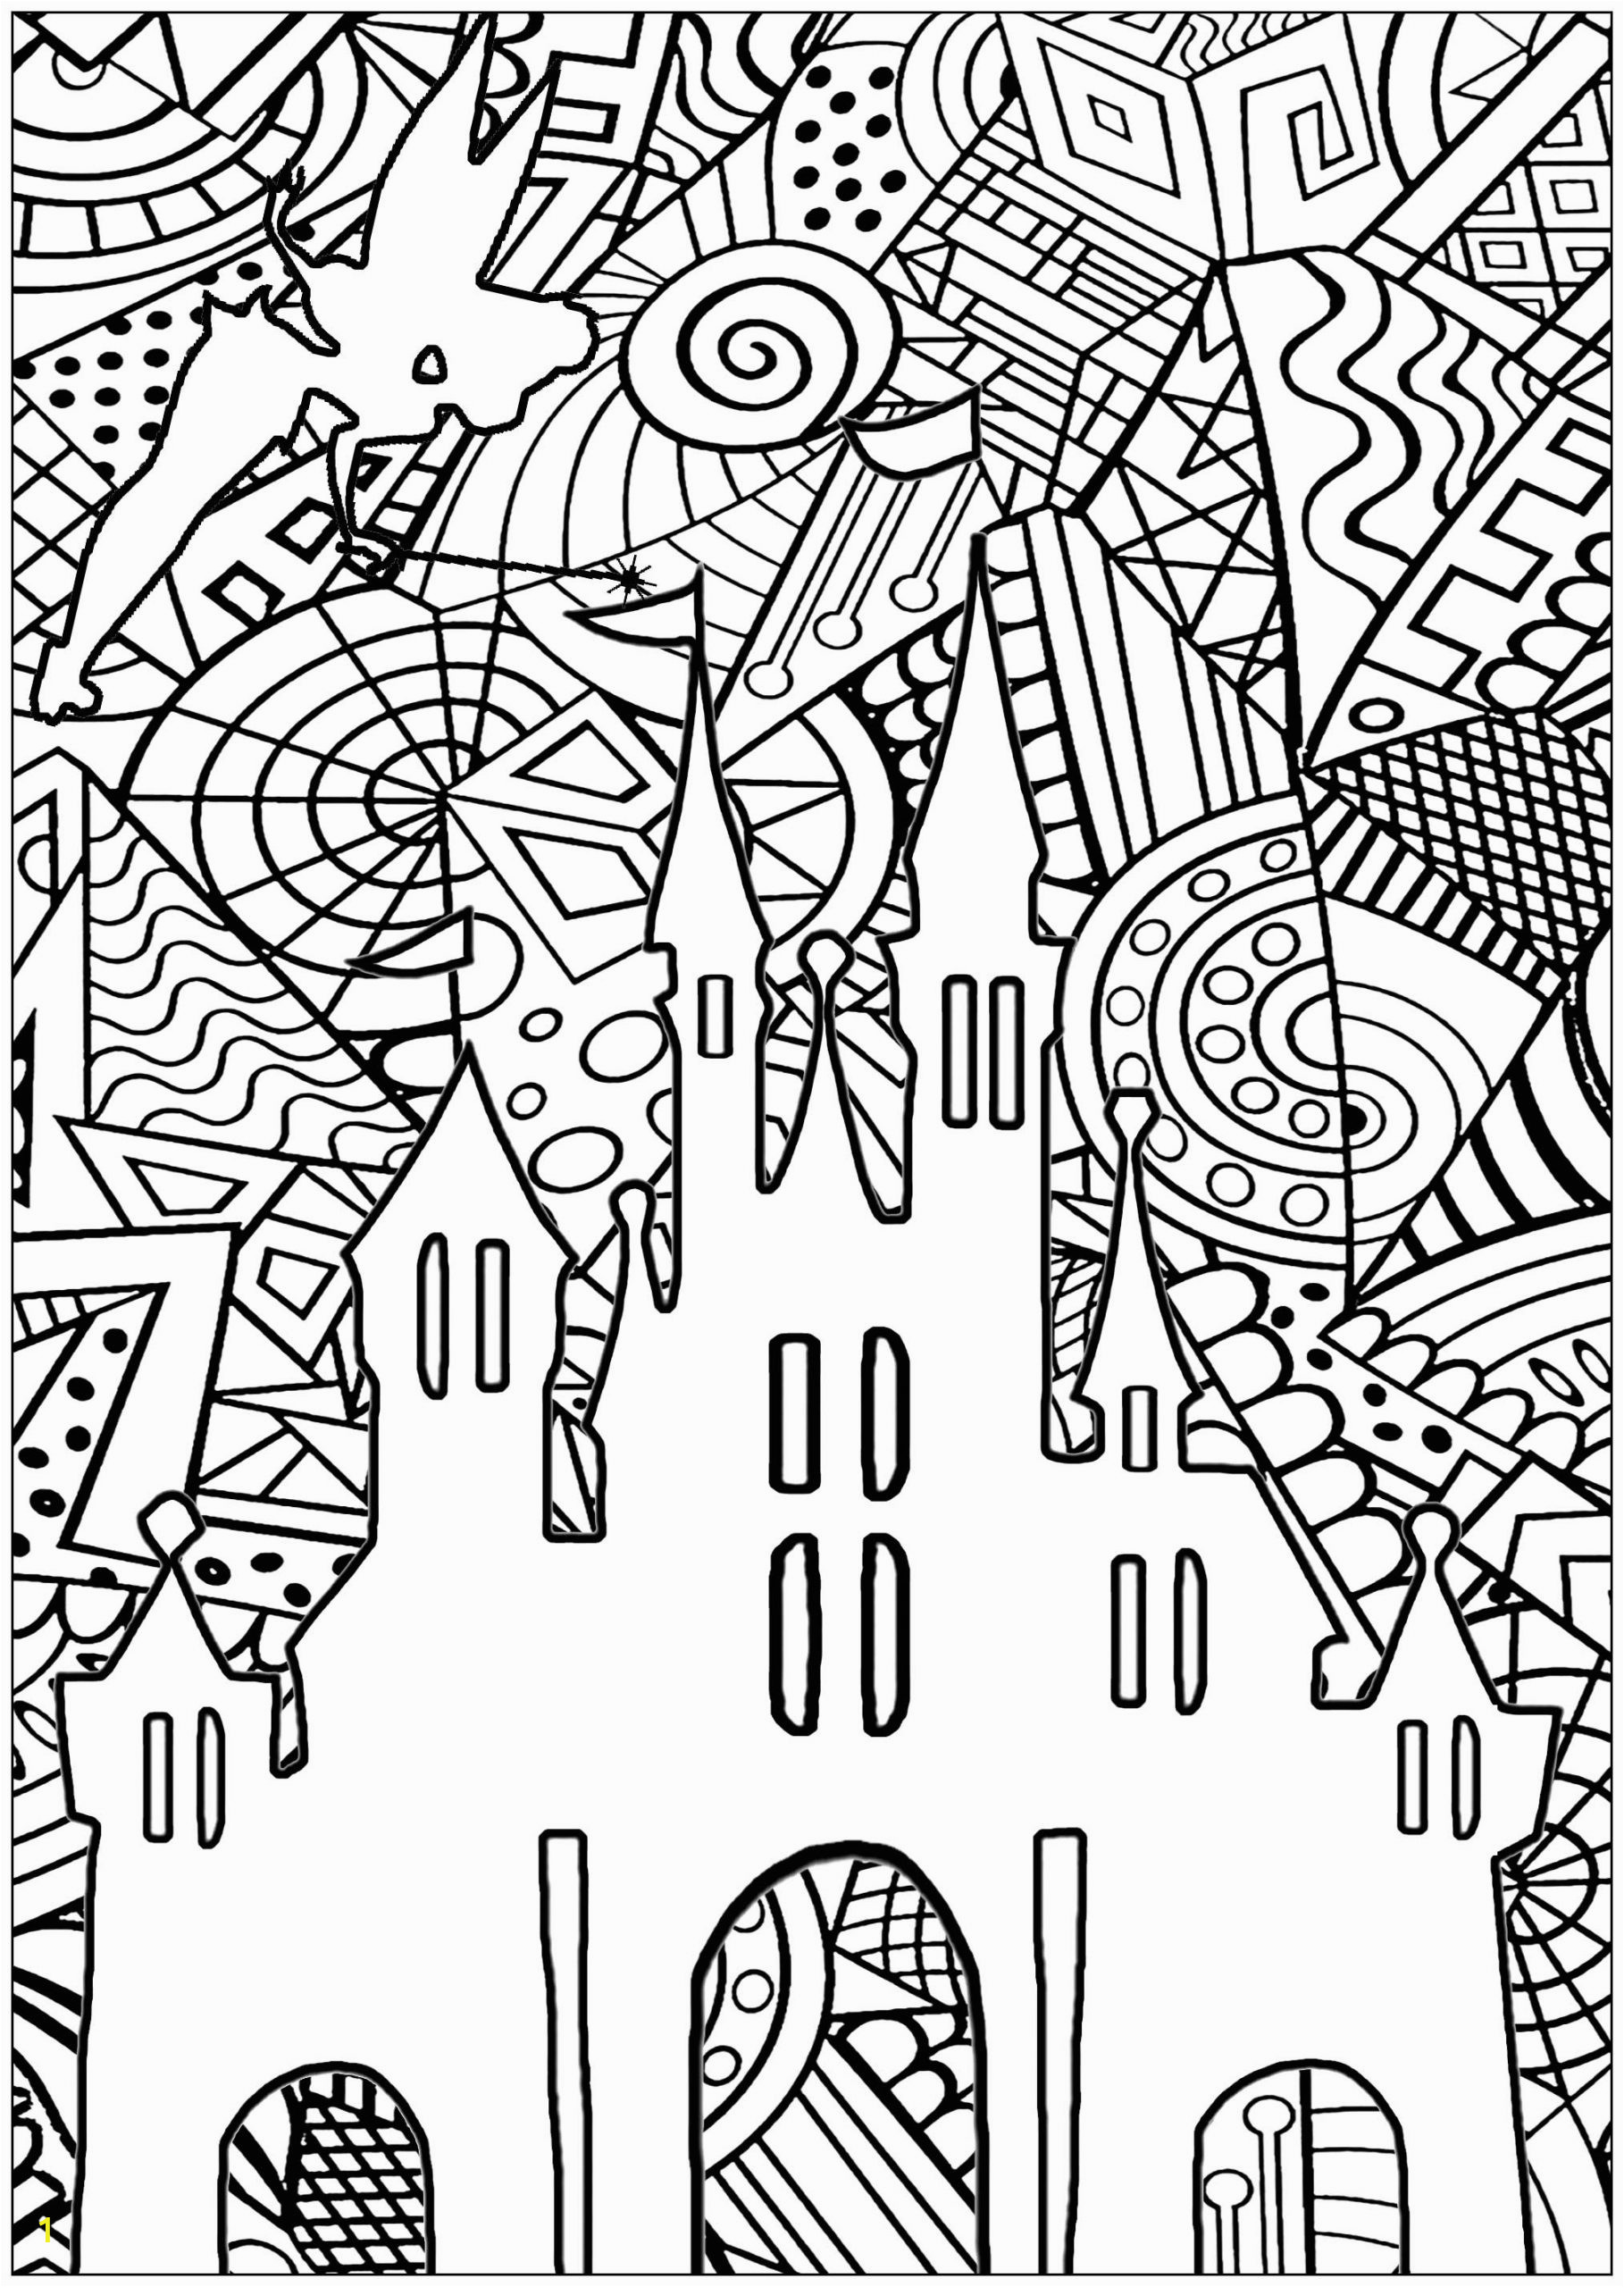 disney coloring paper picnic pages stranger things book adult deer winnie the pooh trolls sheets alien for adults tractor kind sheet johannas christmas aeroplane colouring cat scaled